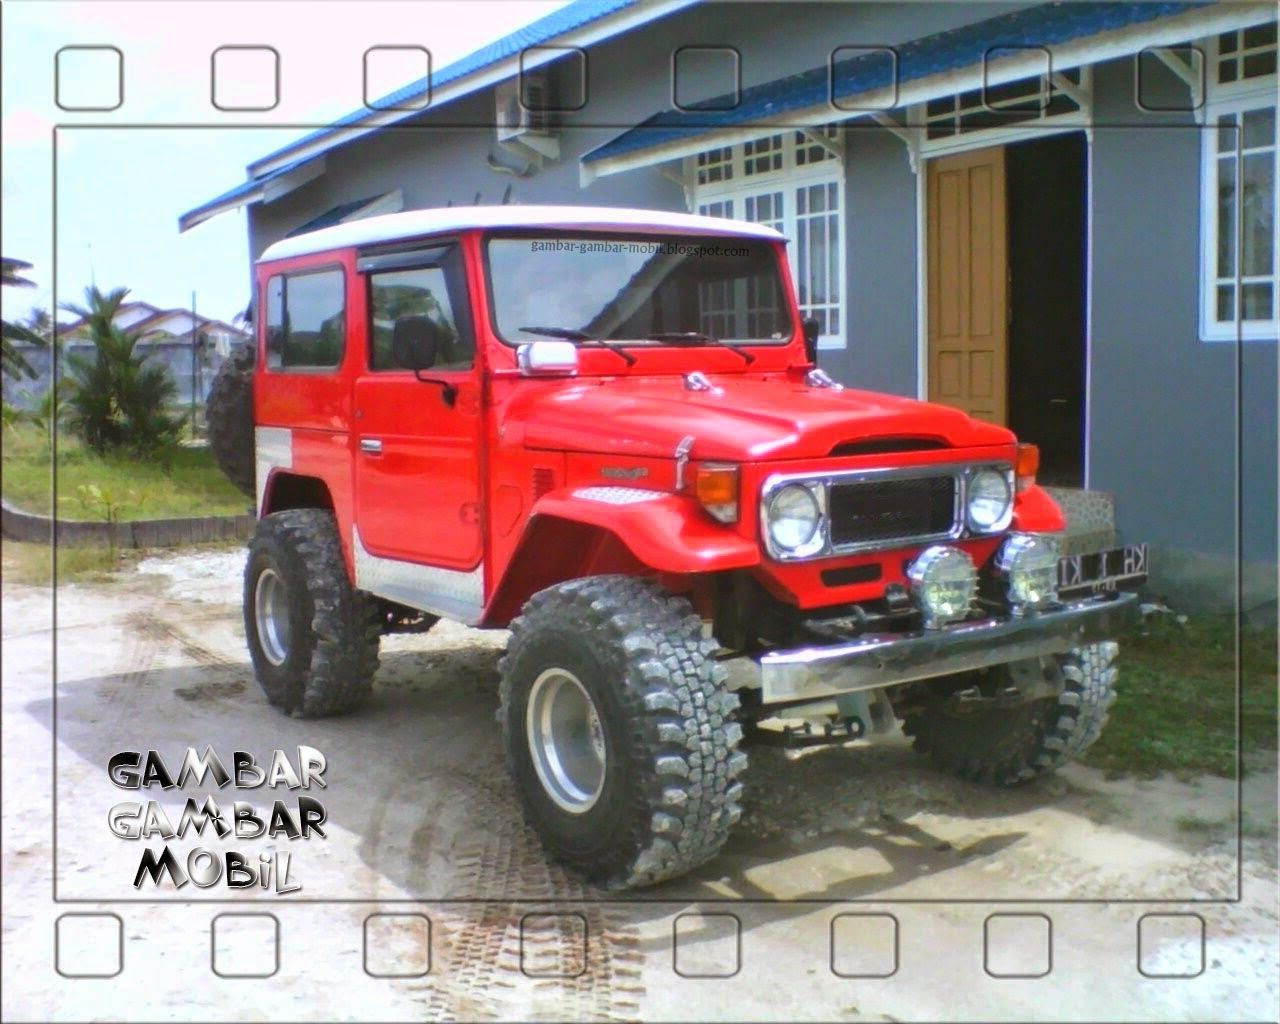 Gambar Mobil Toyota Hardtop Jeep Pinterest Land Hotwheels 15 Rover Defender Double Cab Hijau Cruiser Jeeps